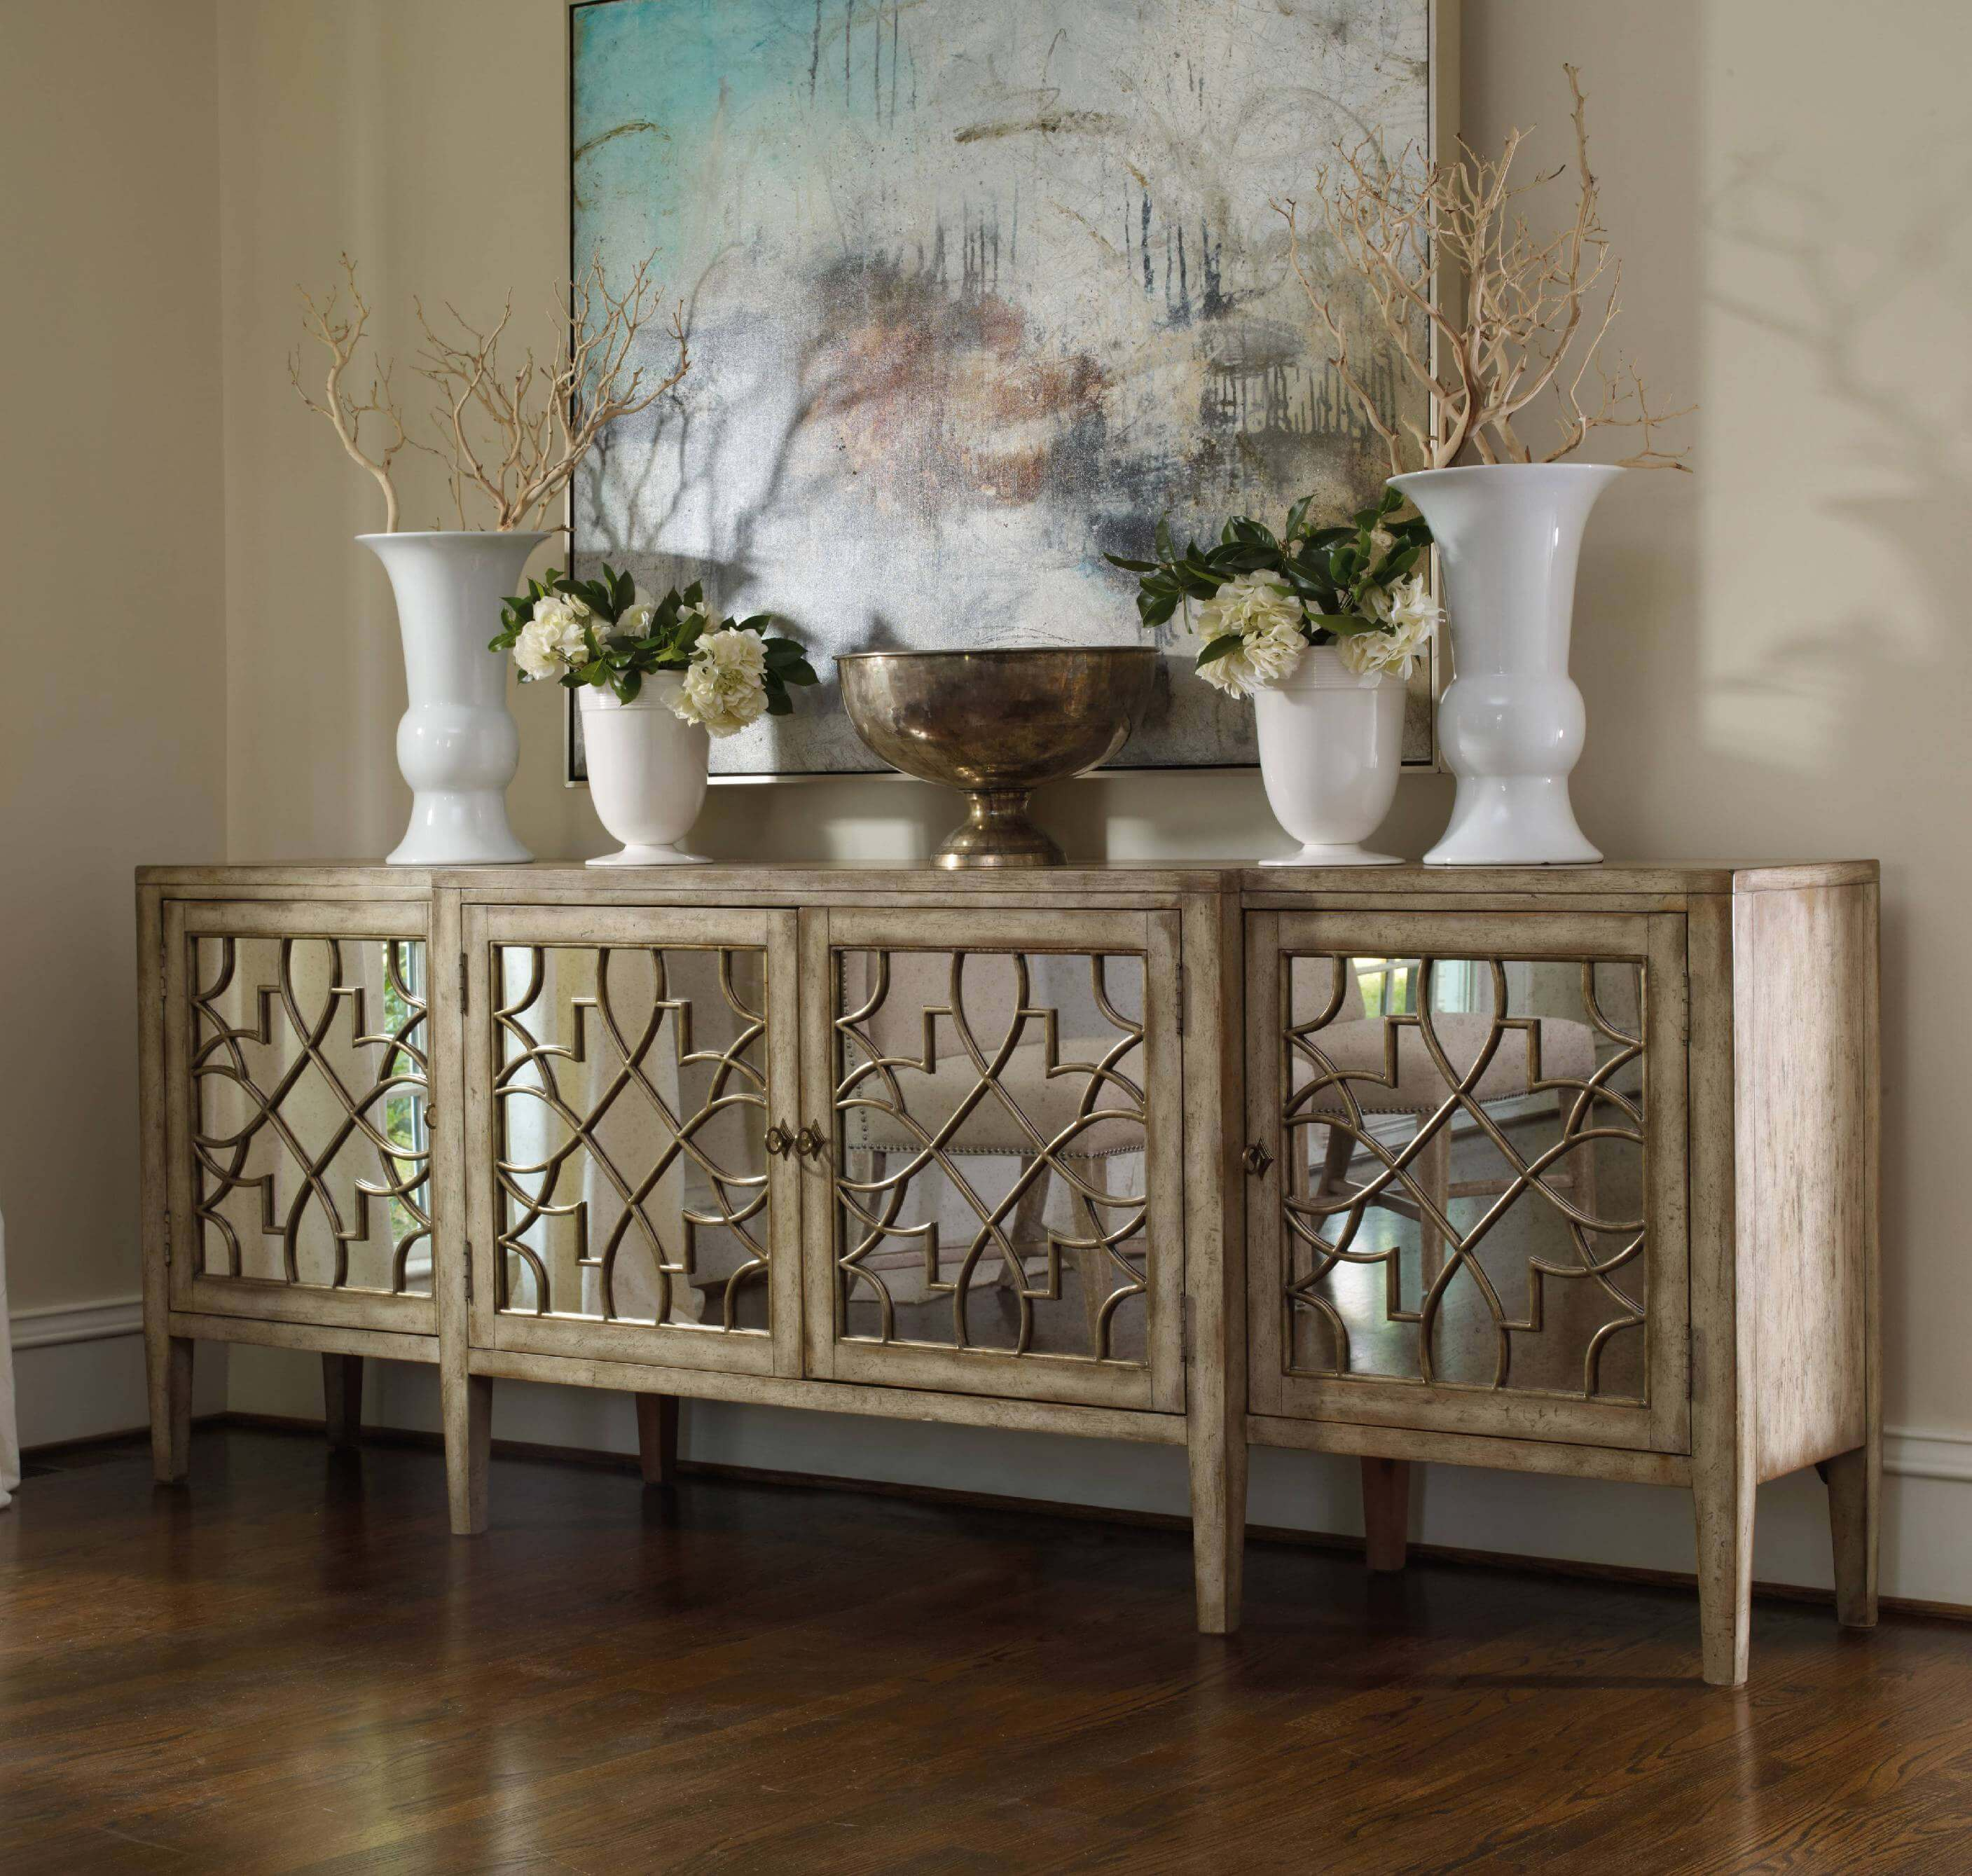 30 Best Rustic Glam Decoration Ideas And Designs For 2019